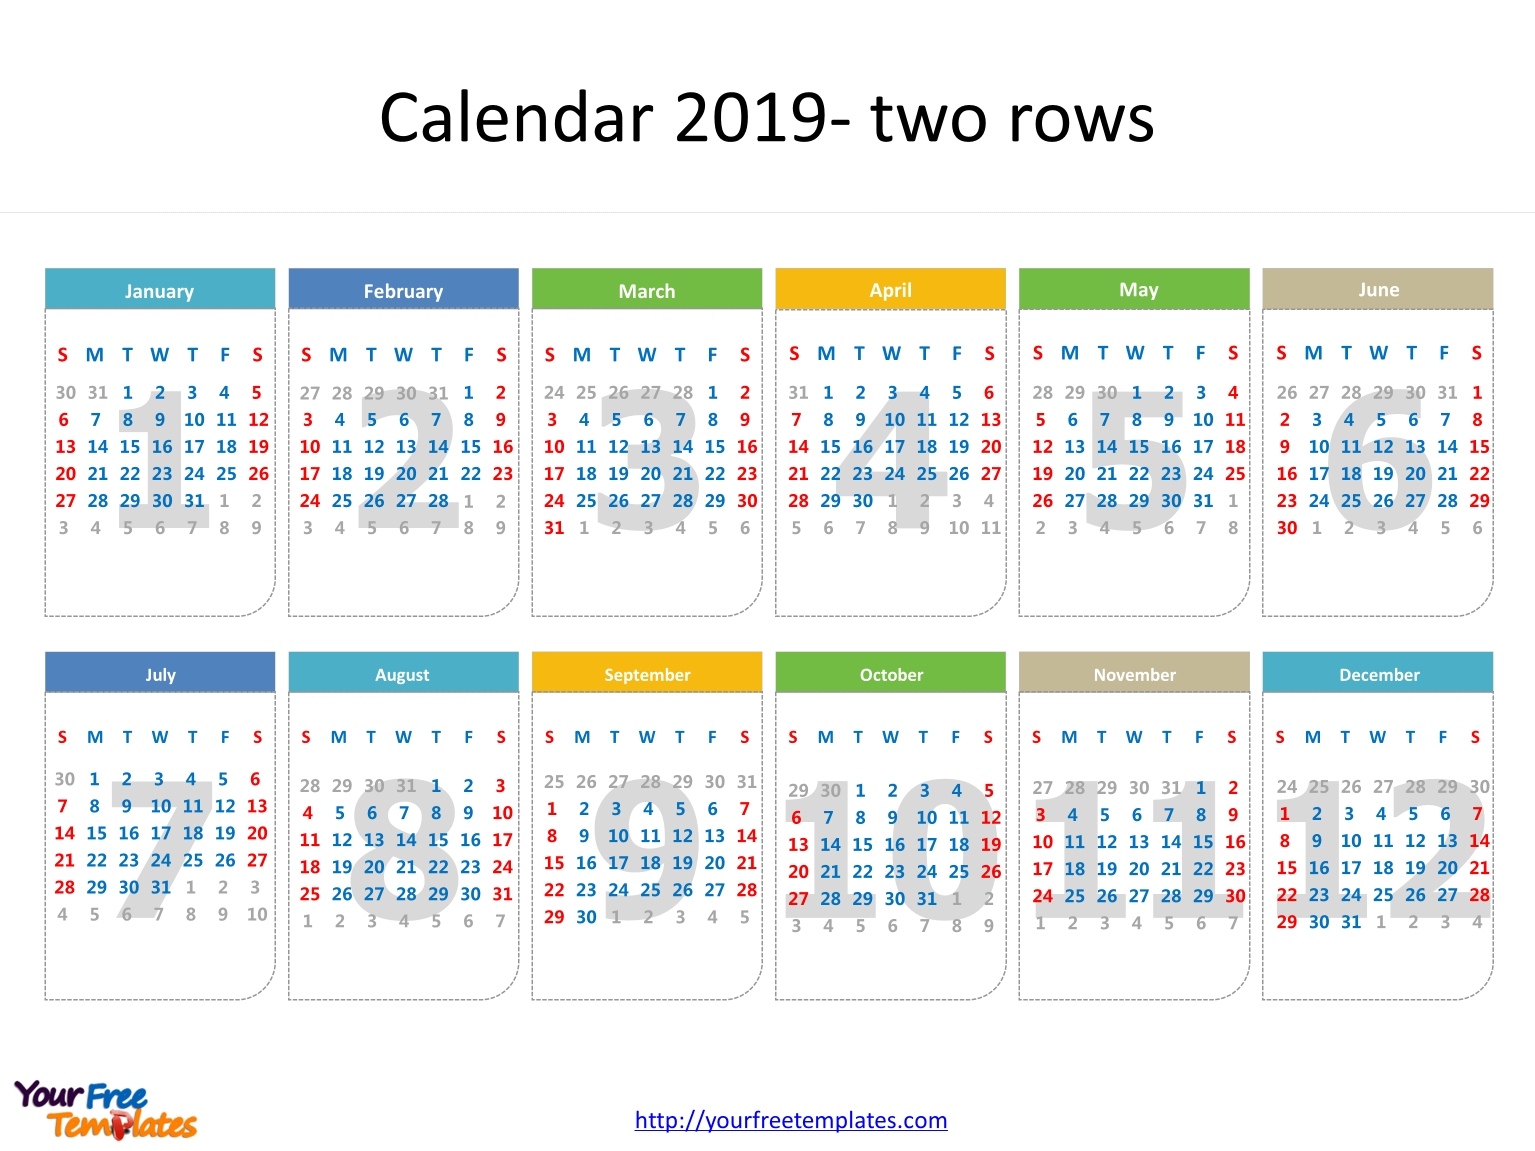 Printable Calendar 2019 Template - Free Powerpoint Templates Calendar 2019 Europe